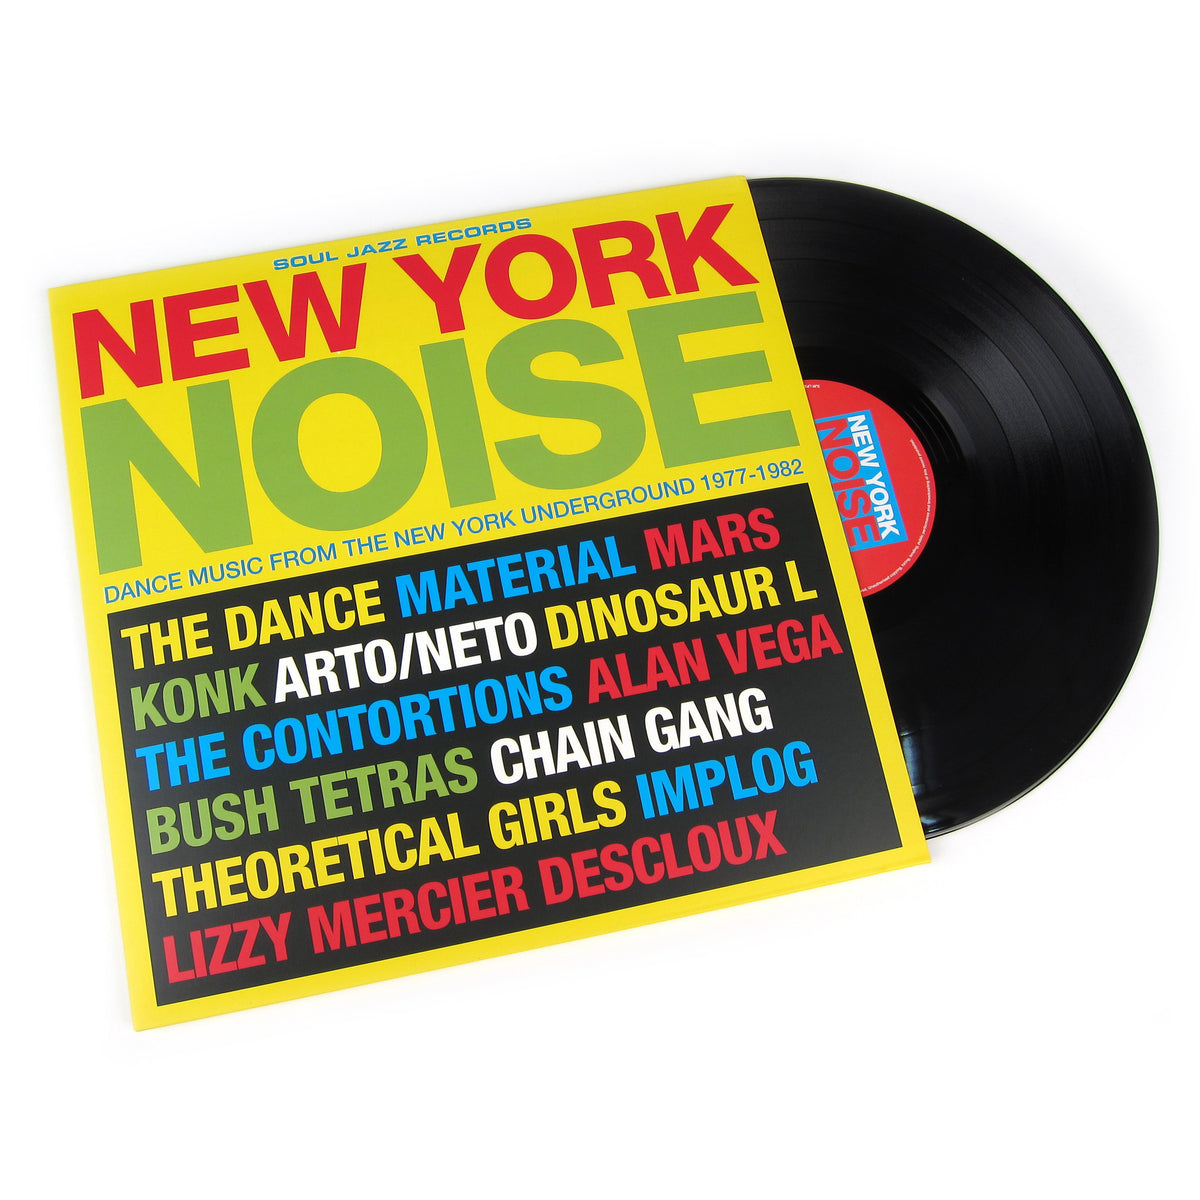 Soul Jazz Records: New York Noise - Dance Music From The New York Underground 1978-1982 Vinyl 2LP